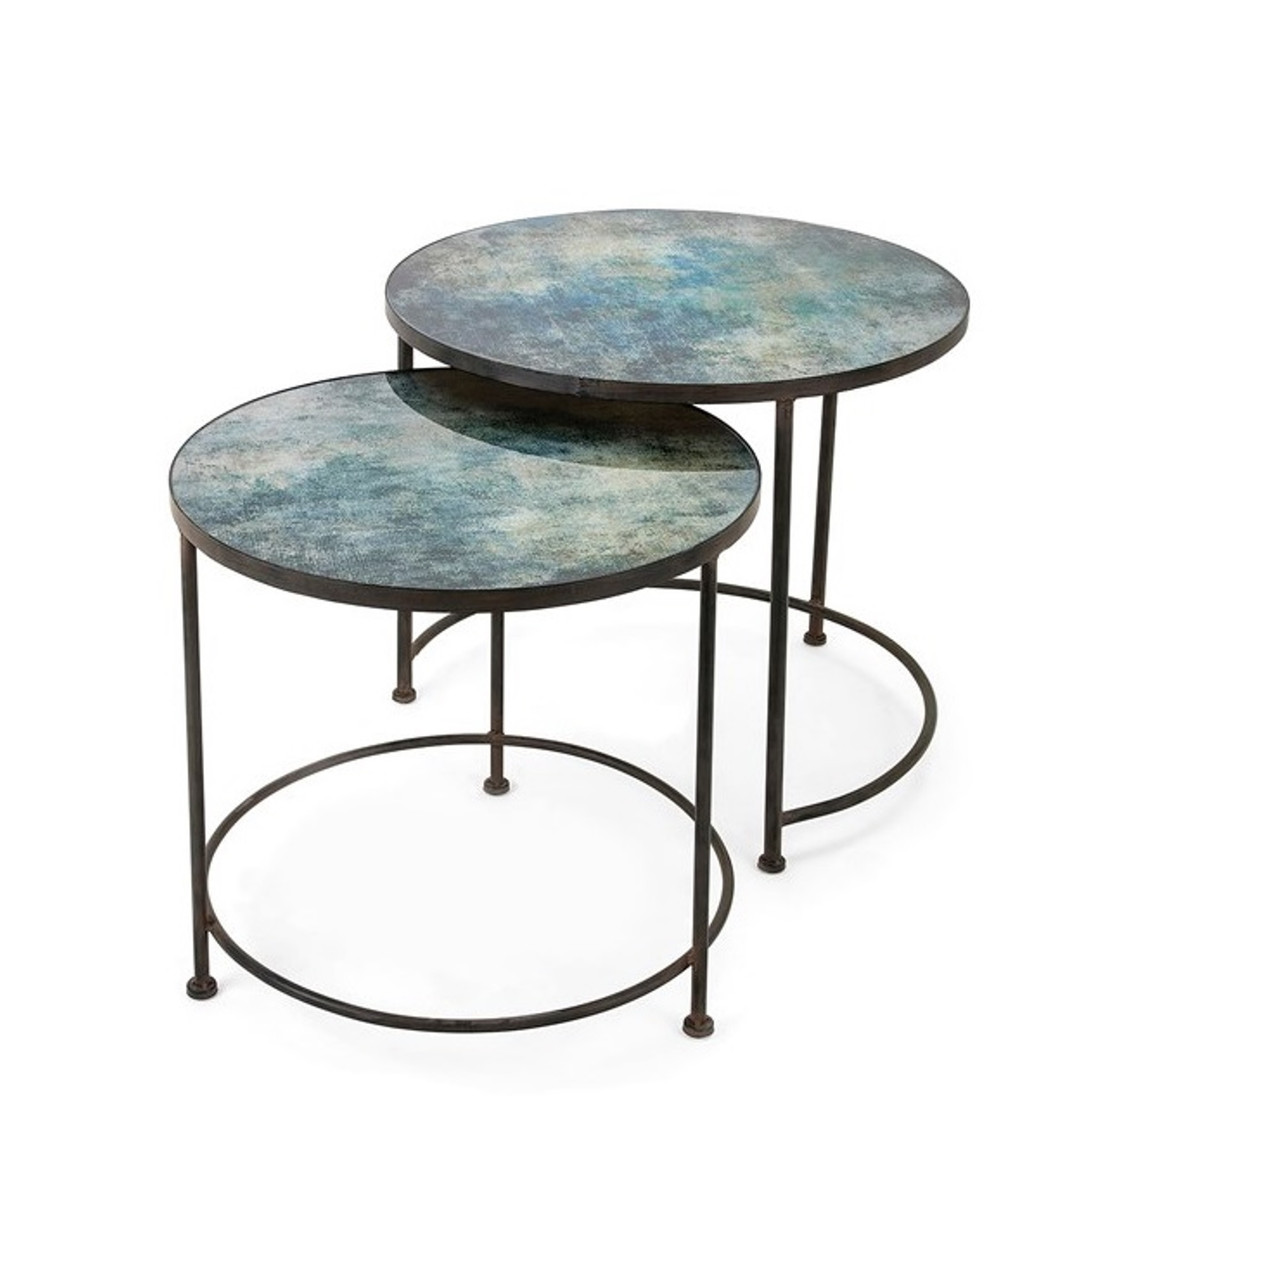 Glass Nesting Tables Set Of 2 Teal Blue Paxton Metal And Printed Glass Decorative Nesting Tables 33